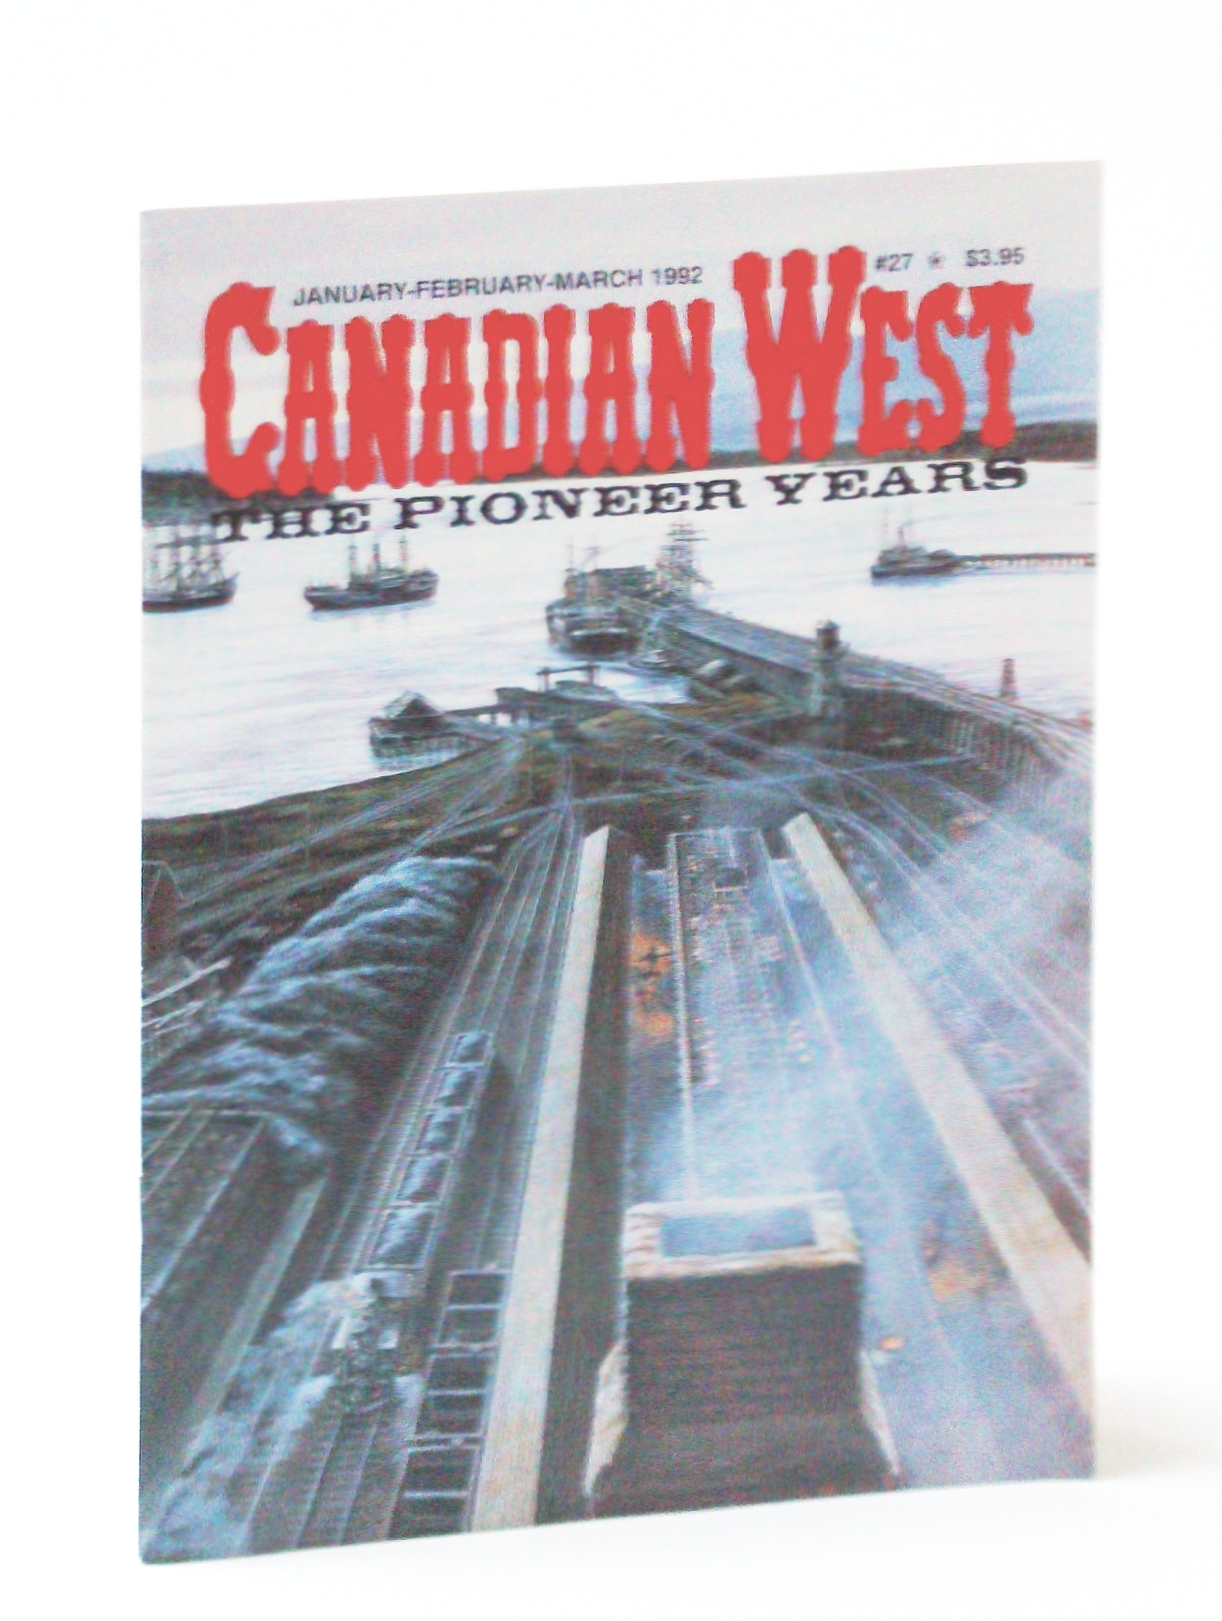 Image for Canadian West Magazine - The Pioneer Years: January (Jan.) /February (Feb.) /March (Mar.) 1992,  Vol. 8, No. 1 (Collector's #27) - Union Bay, B.C. Cover Illustration